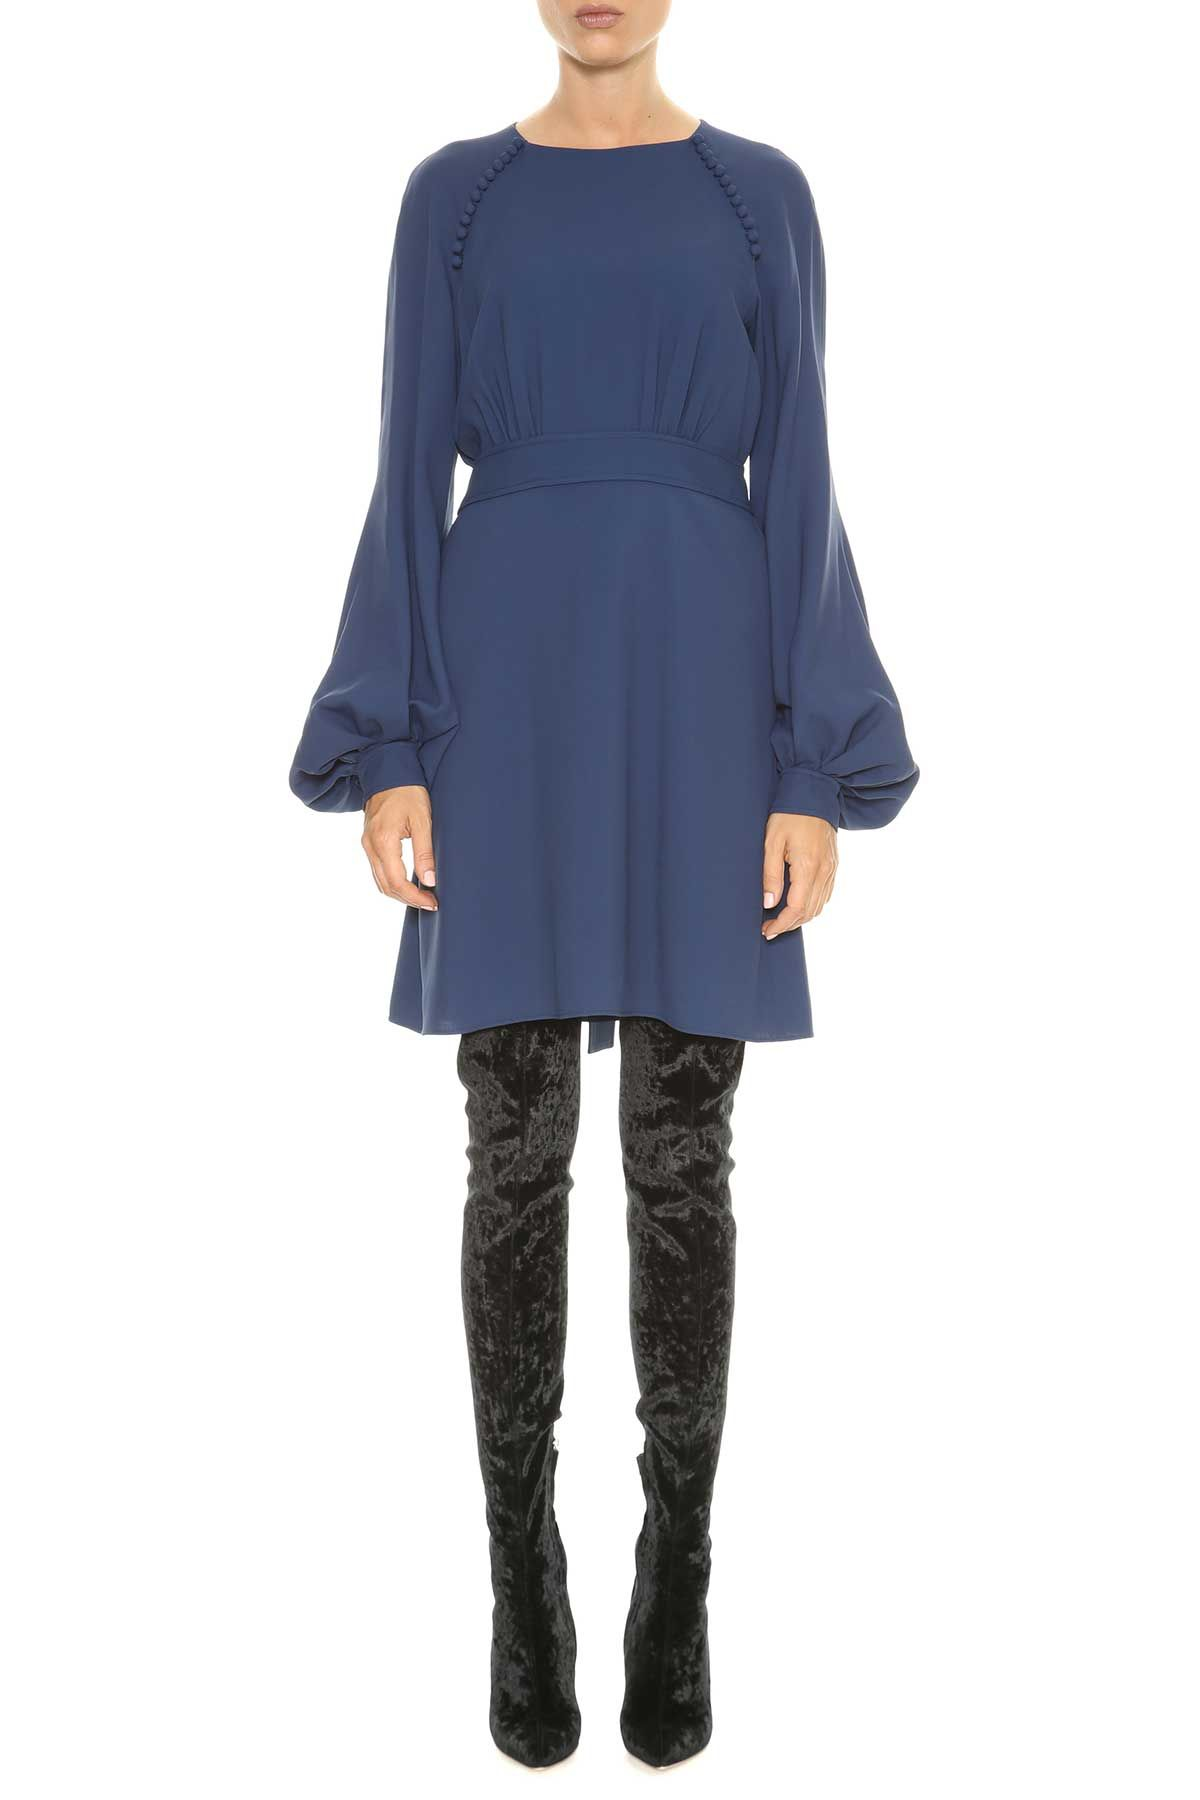 Chloé Short Dress With Wide Sleeves